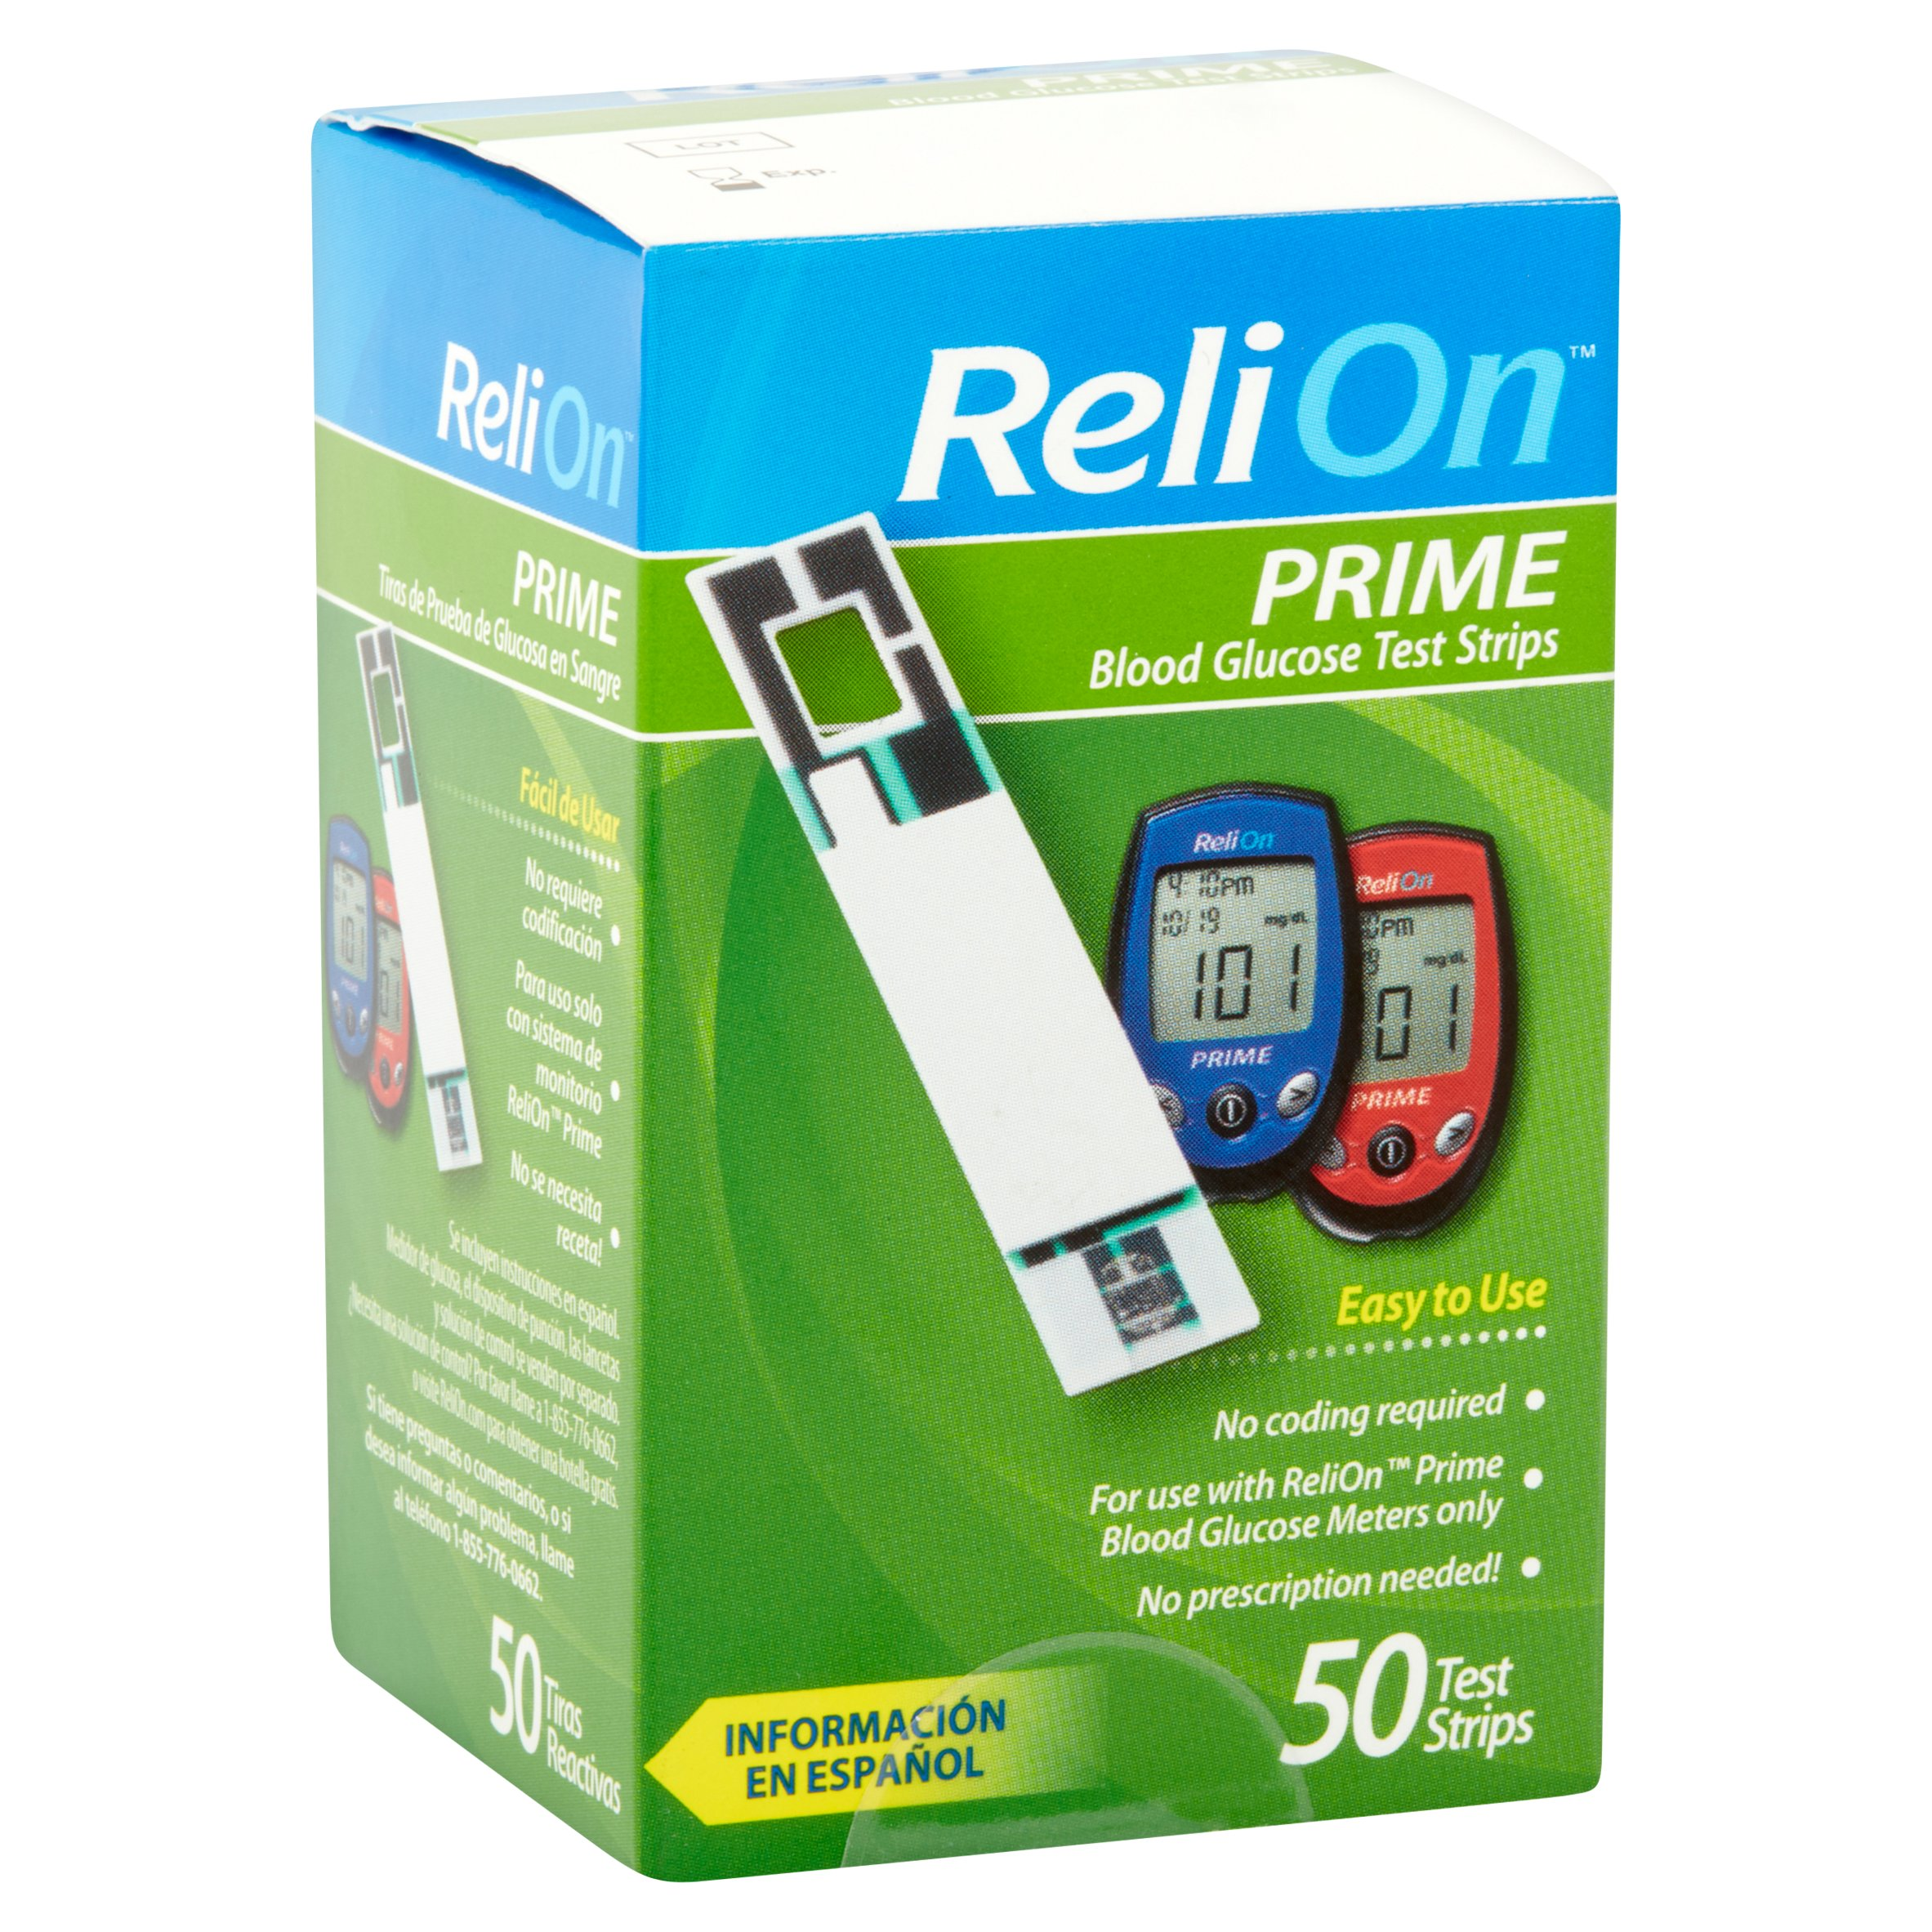 Example of Walmart's ReliOn products.